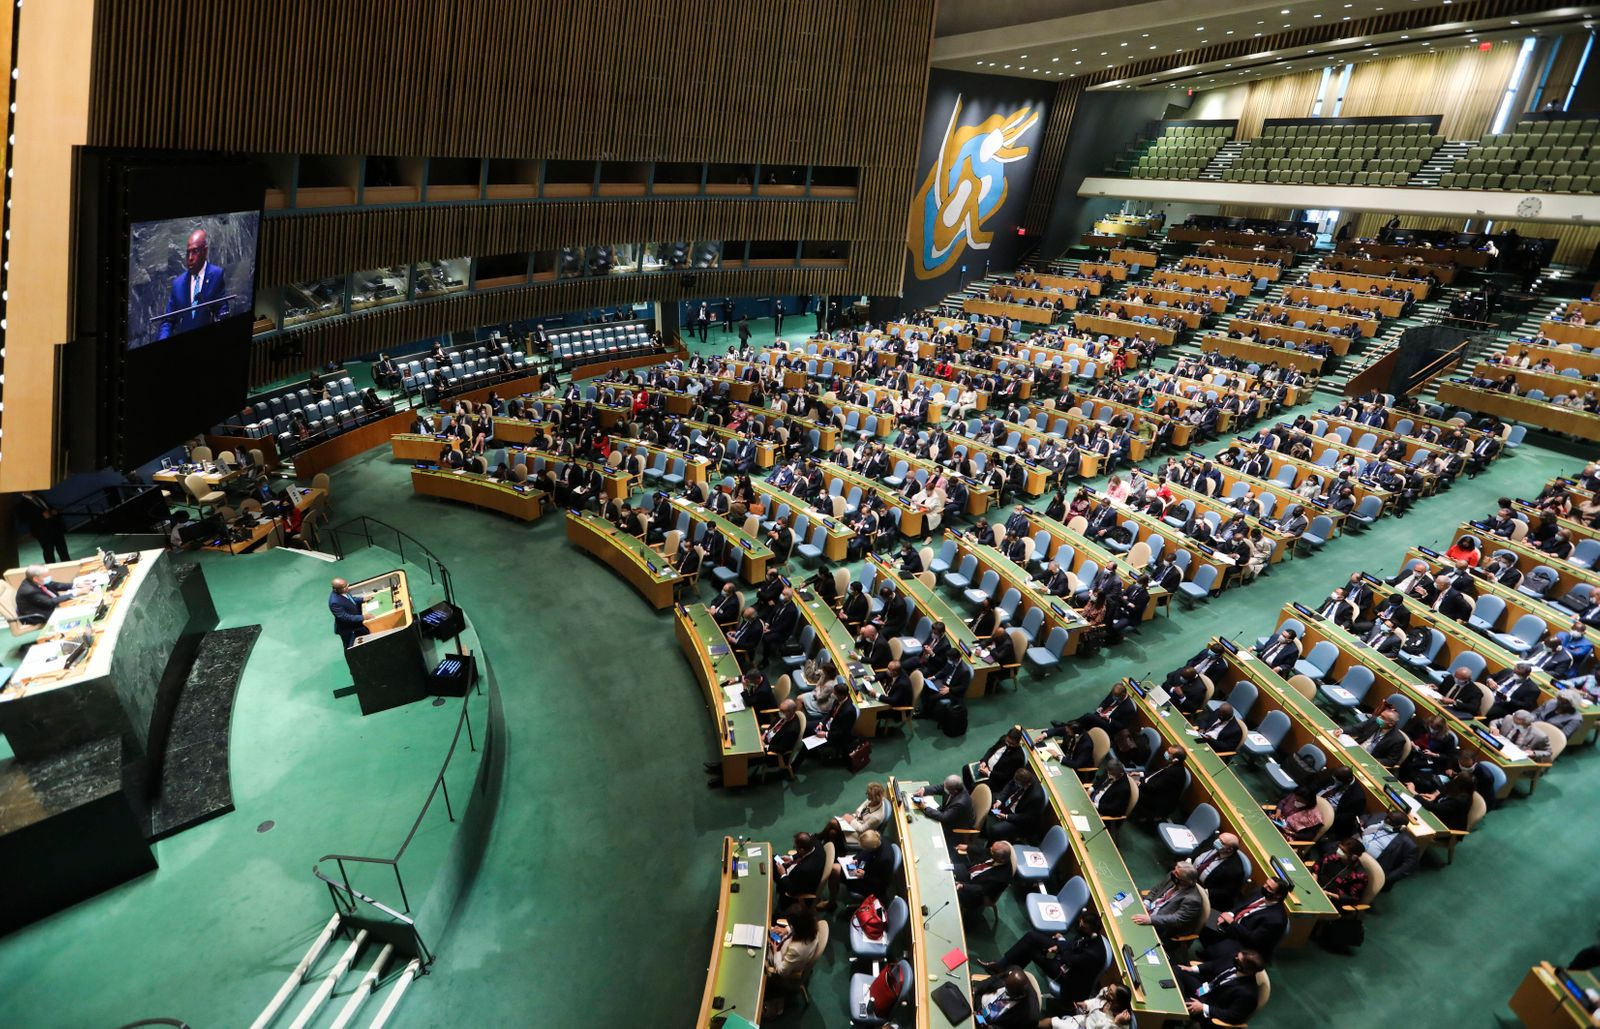 (210921) -- UNITED NATIONS, Sept. 21, 2021 -- Abdulla Shahid (at the podium and on the screen), president of the 76th s